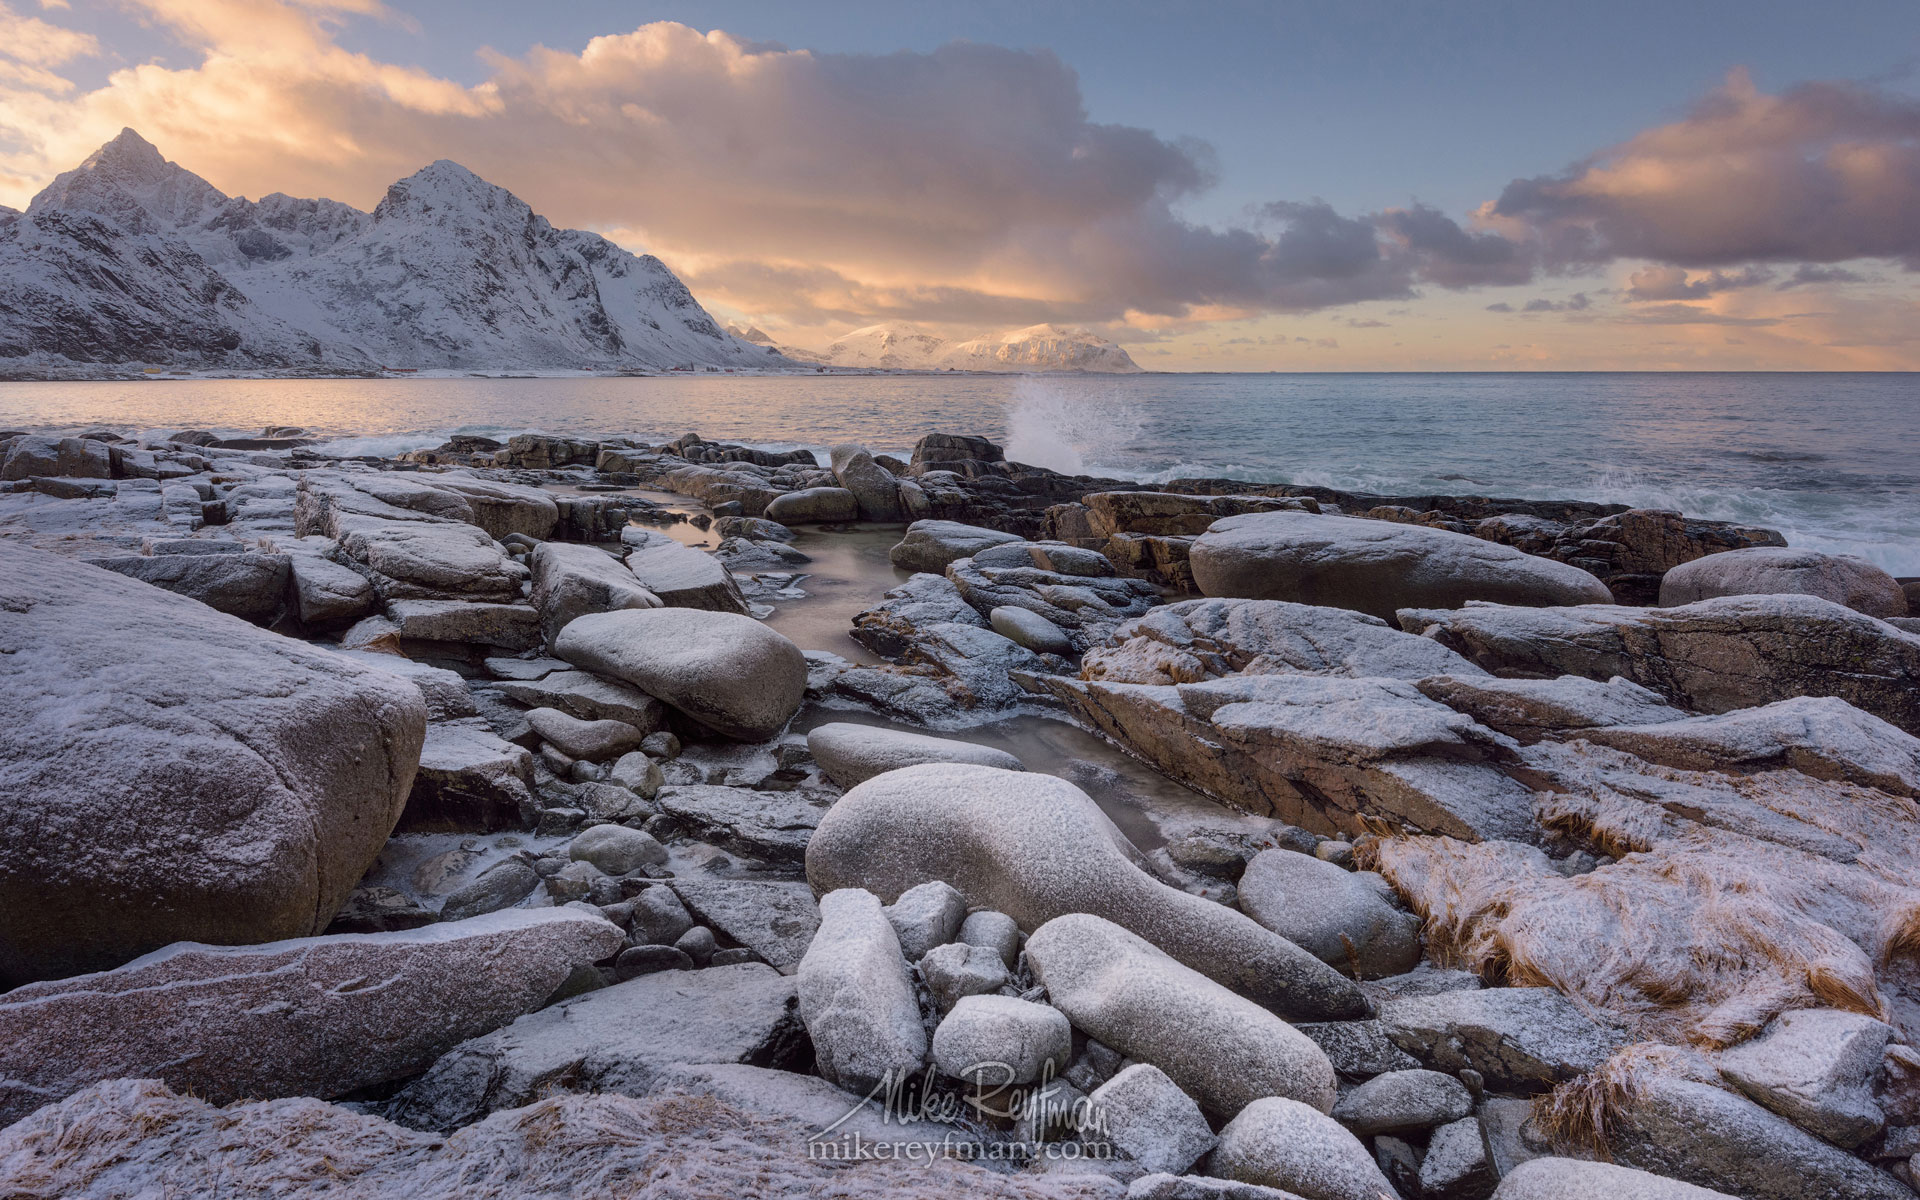 Vareid Shoreline and Jagged snow capped peaks of Flakstad Fjord before sunset. Vareid, Flakstadoya island, Lofoten archipelago, Nordland, Norway. LF-MRD1E0395 - Lofoten Archipelago in Winter, Arctic Norway - Mike Reyfman Photography